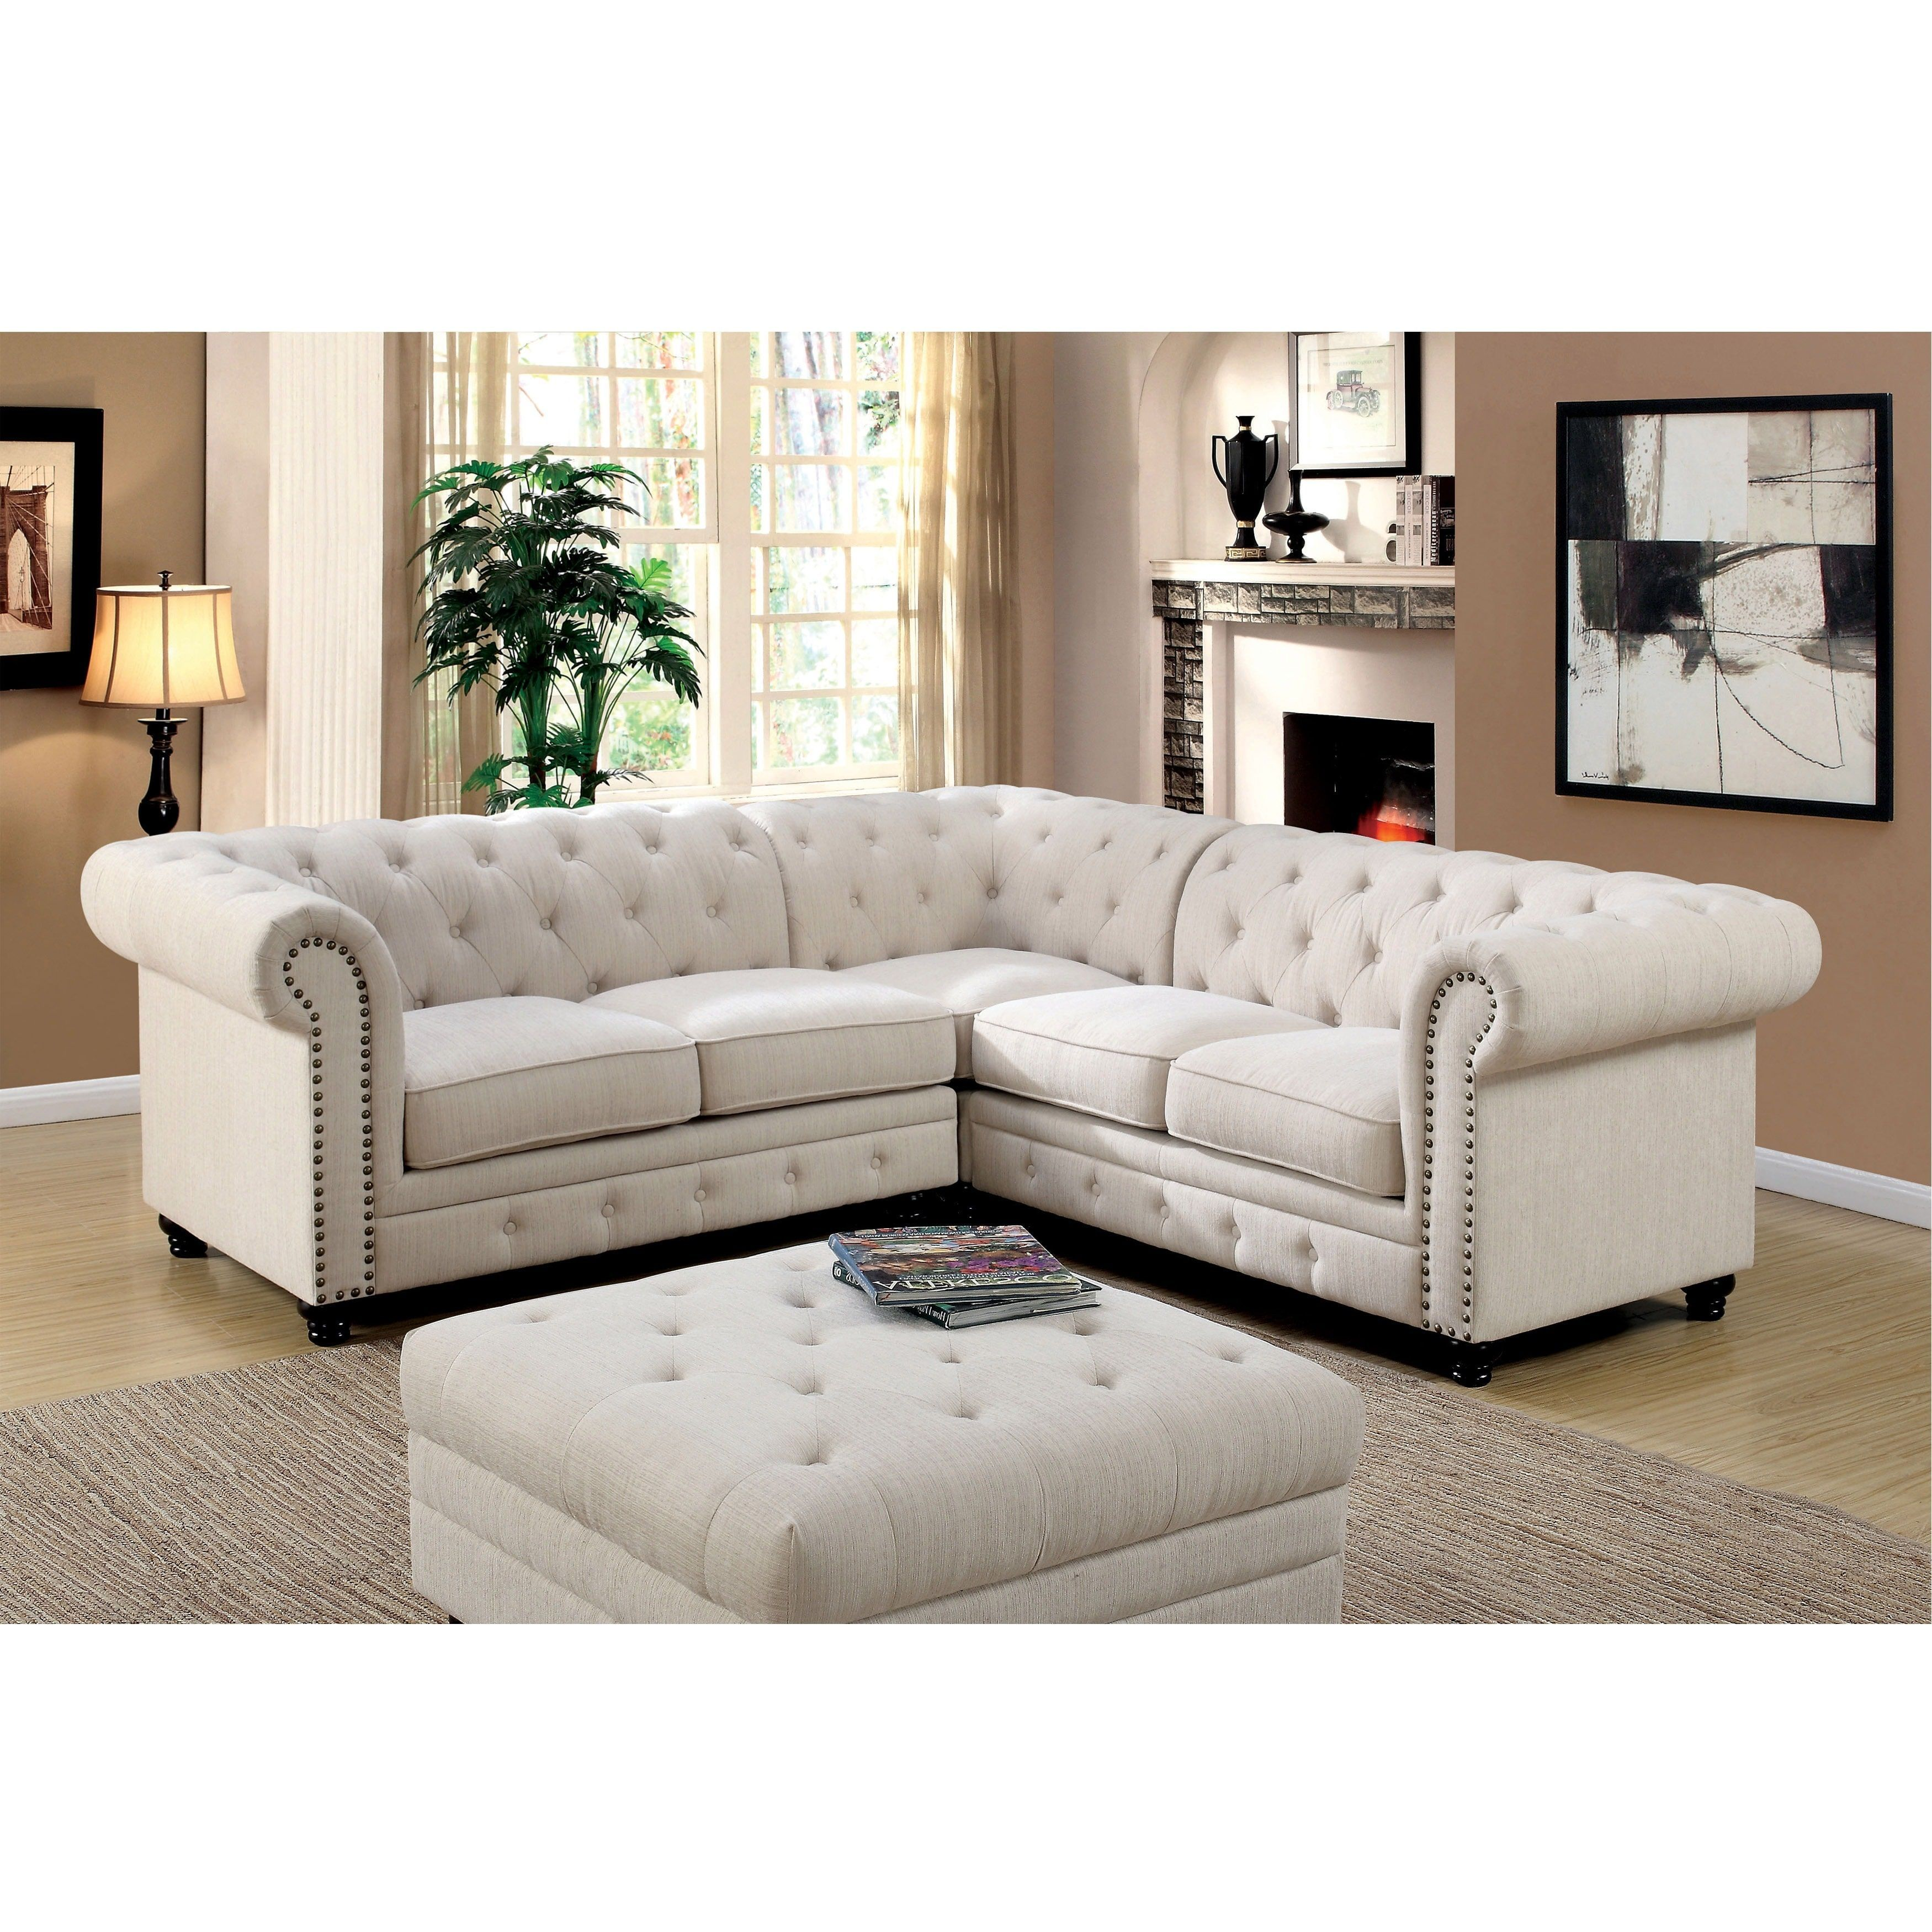 Furniture Of America Sylvana Traditional Tufted Linen Like Sectional Ivory Beige Off White Fabric